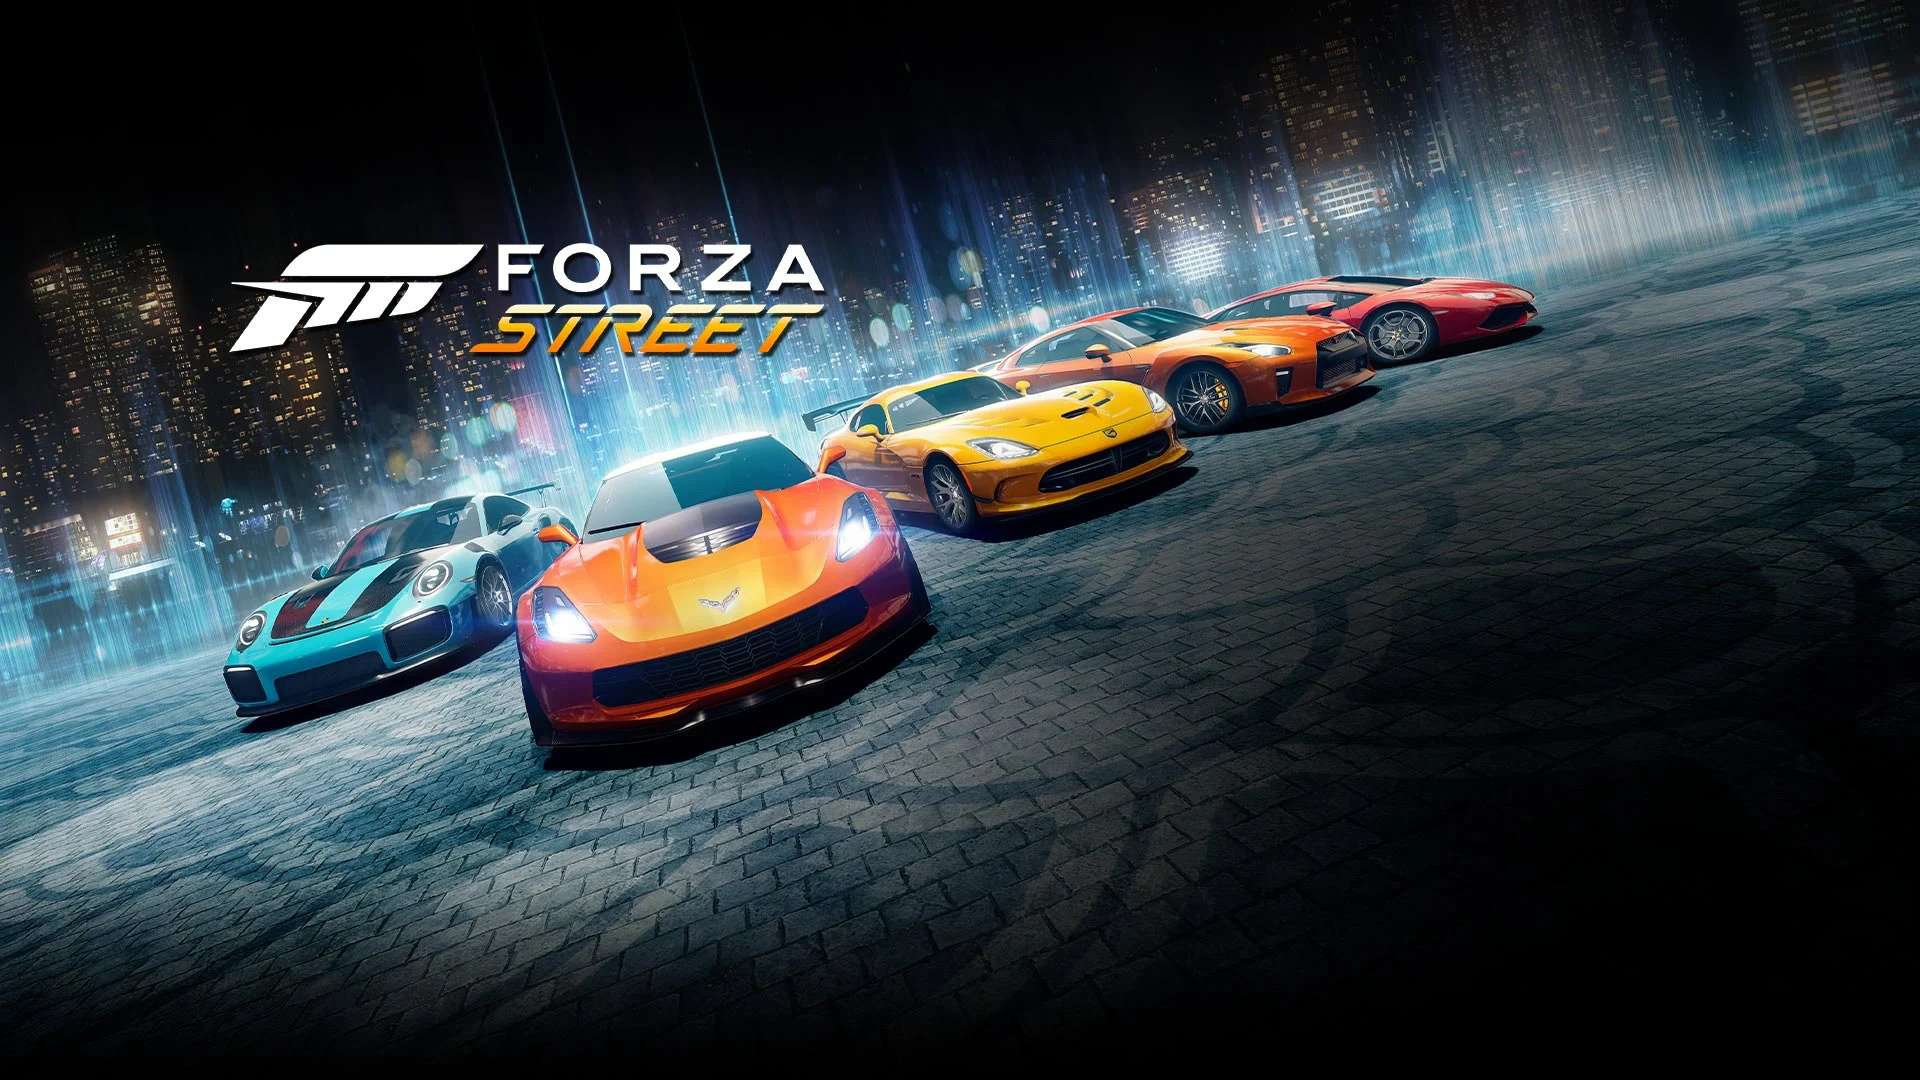 Forza Street accelerates on Apple and Android smartphones